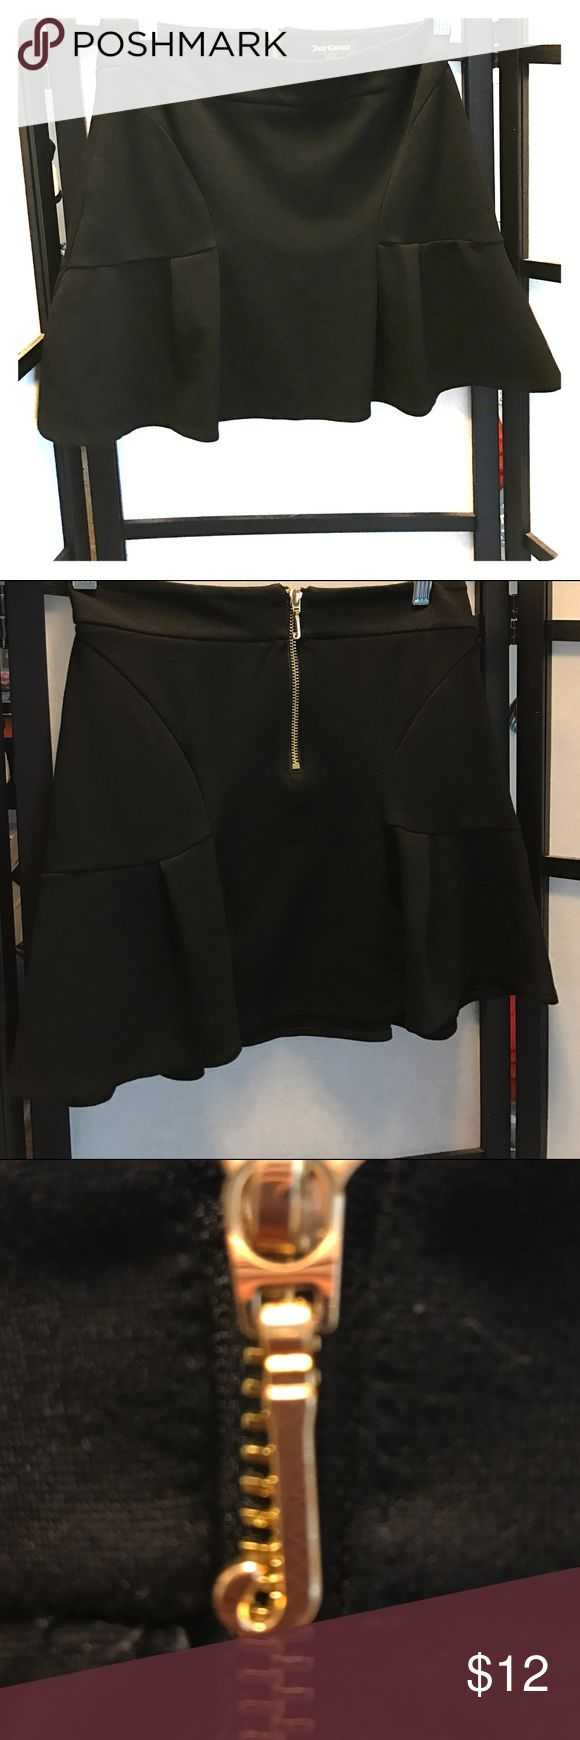 Juicy skirt EUC, zipper in back, Cotton/Polyester blend, size 2. BUNDLE this with one or more item(s) to take advantage of my 20% percent 💰DISCOUNT💰🎉! Juicy Couture Skirts